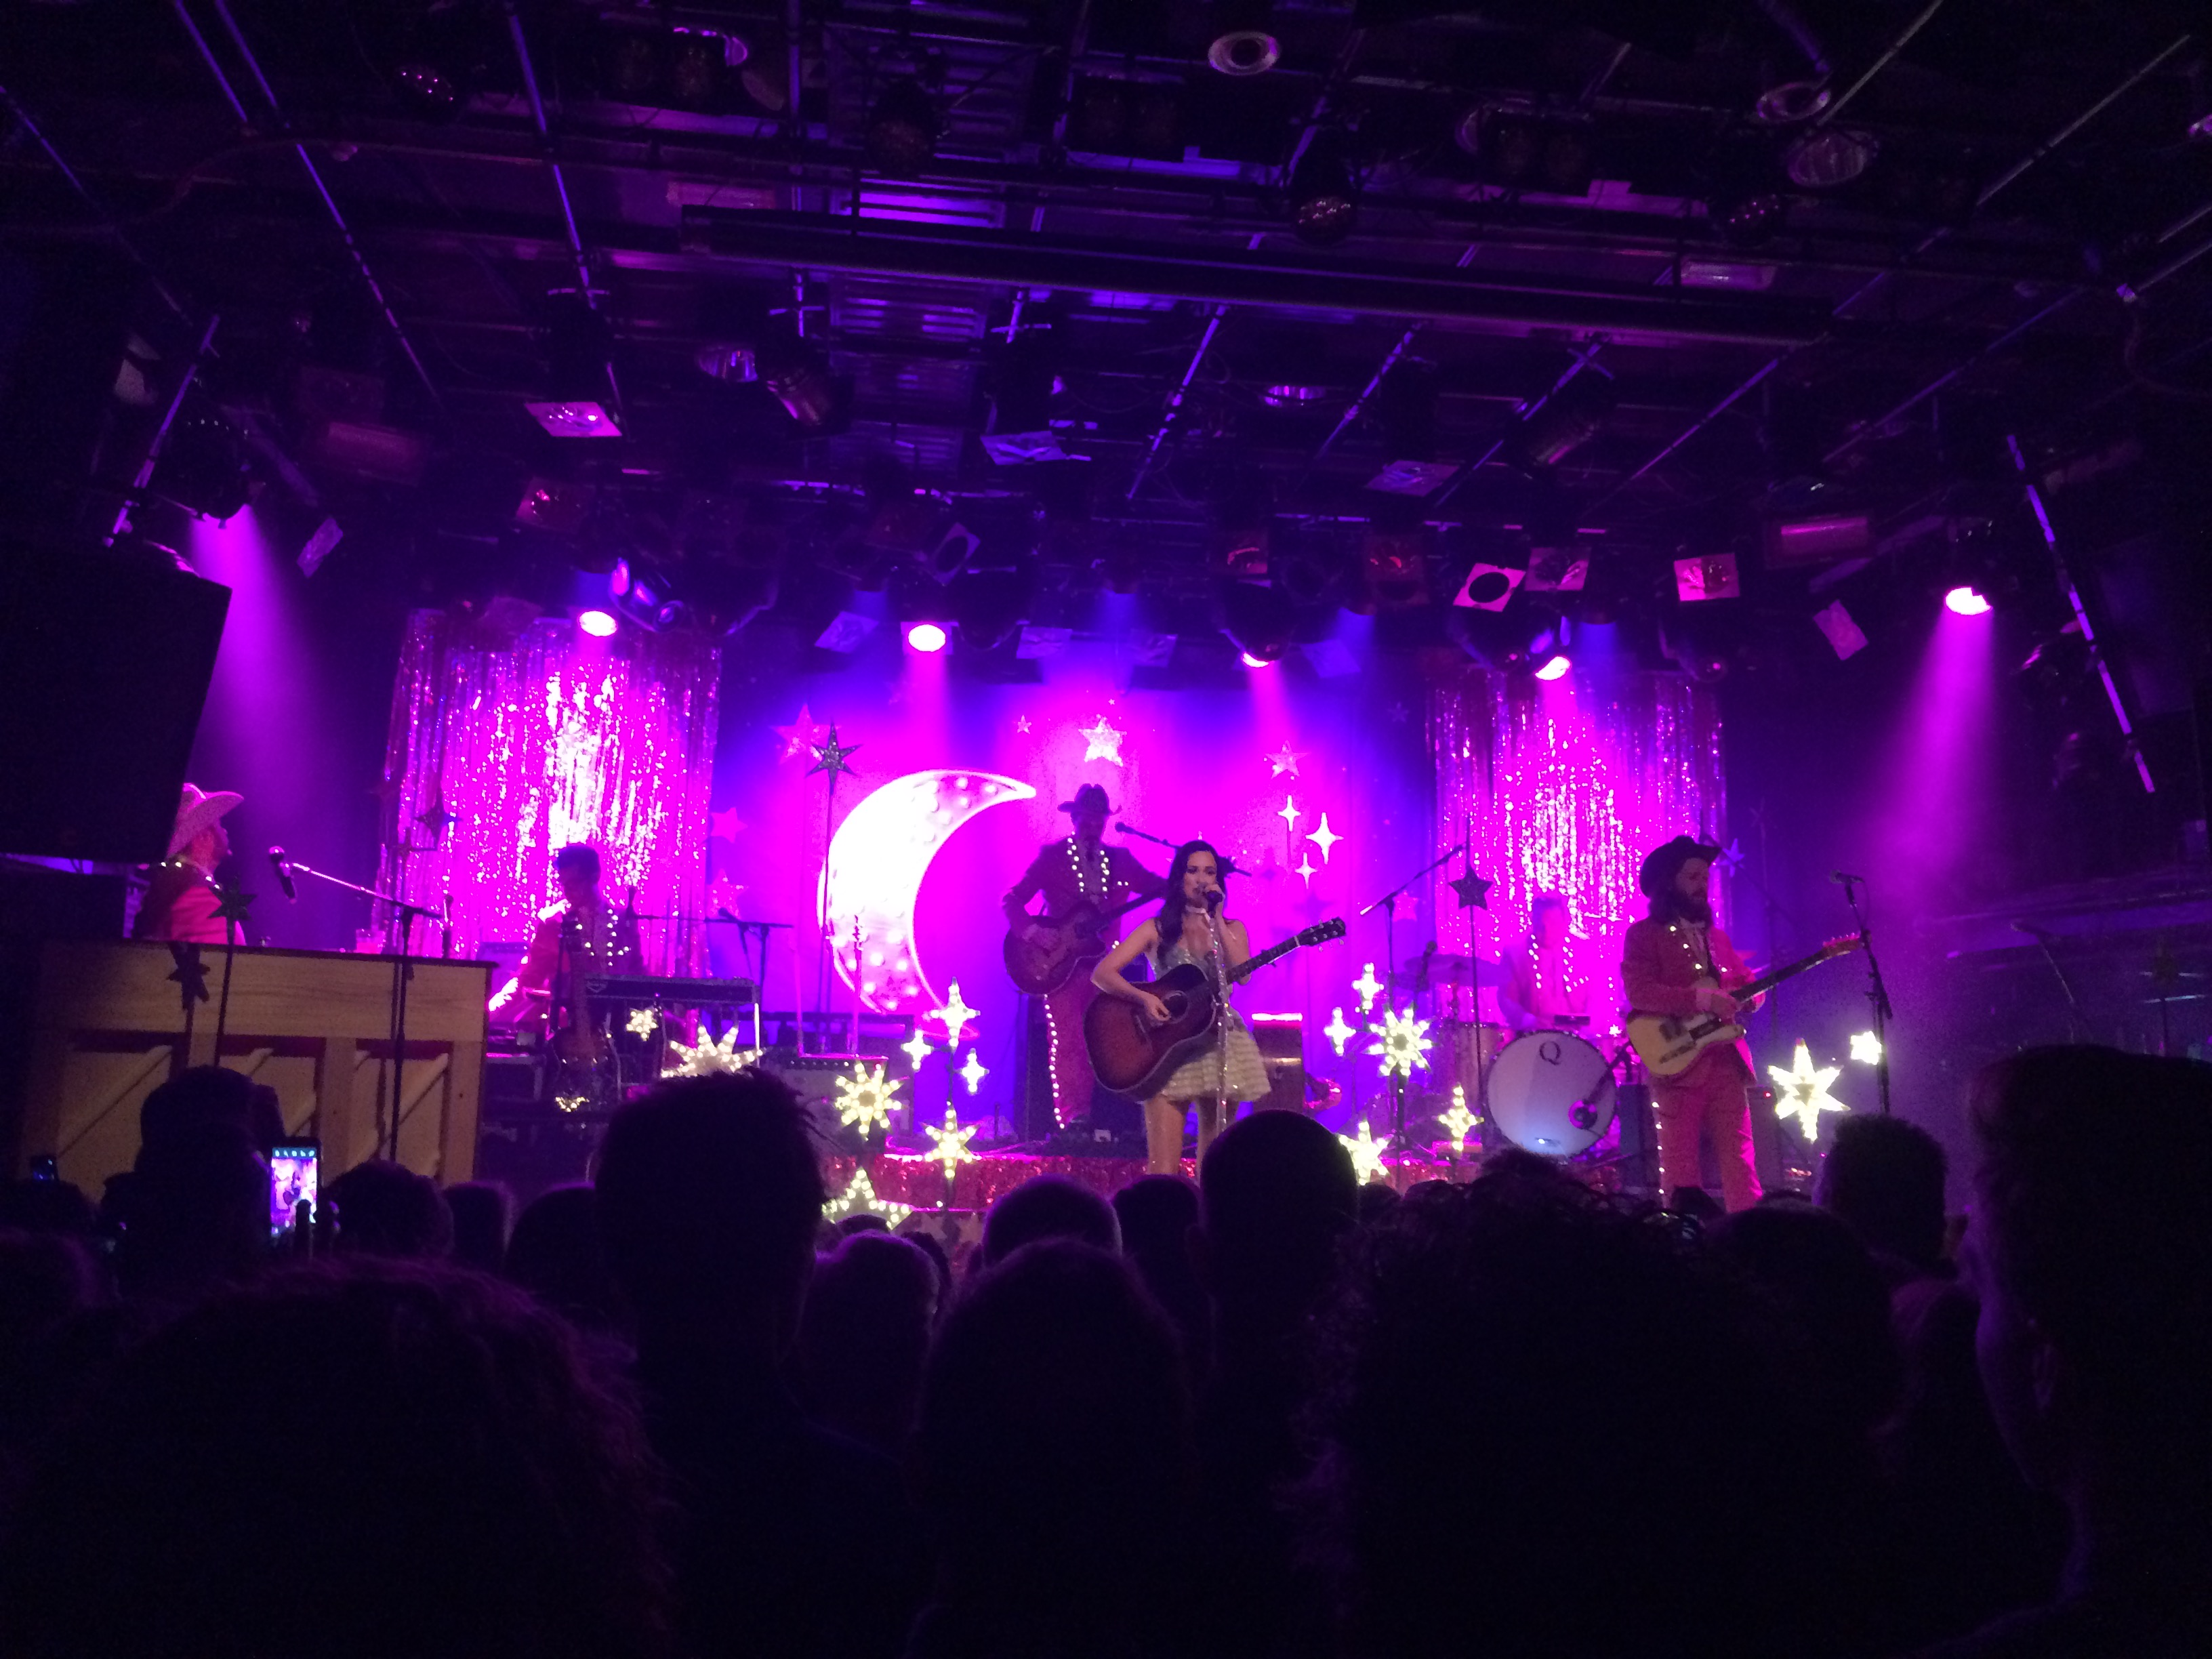 Concertreview: 'We've all got dirty laundry hangin' on the line, except Amsterdam'